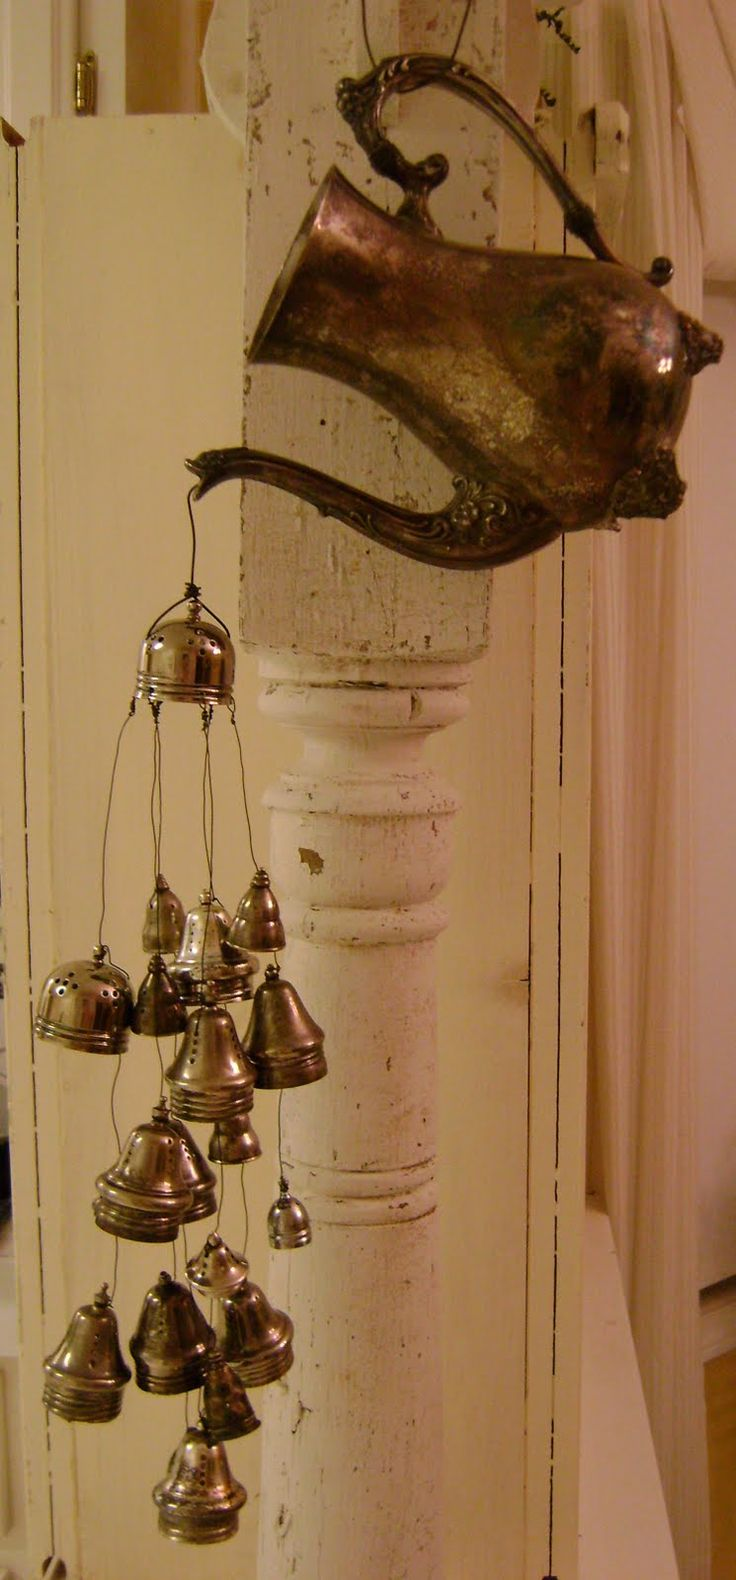 821 best images about windchimes rain chains mobiles on for Wind chimes from recycled materials